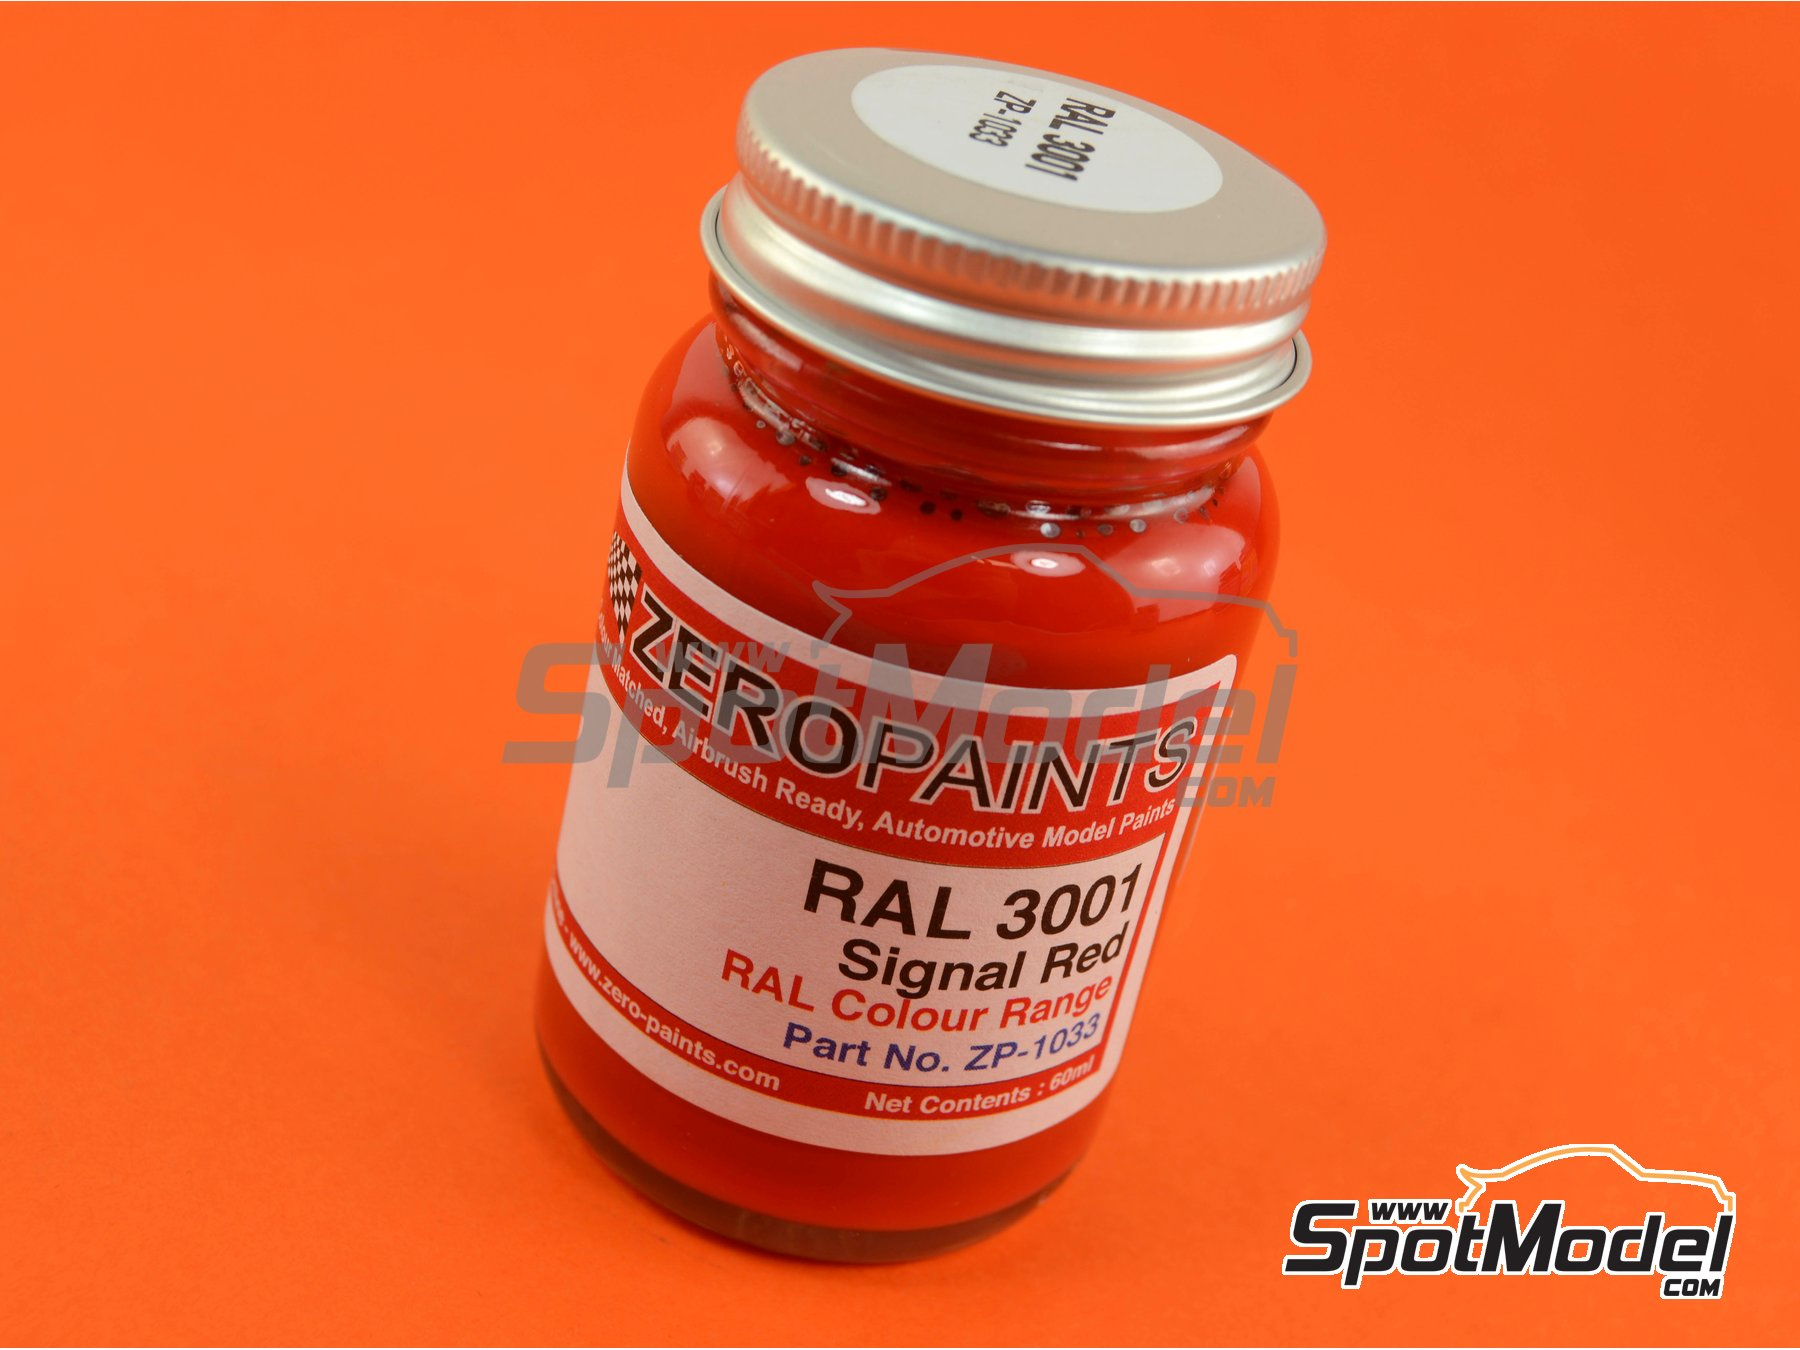 Image 1: RAL3001 - Signal red - 1 x 60ml   Paint manufactured by Zero Paints (ref.ZP-1033-RAL3001)